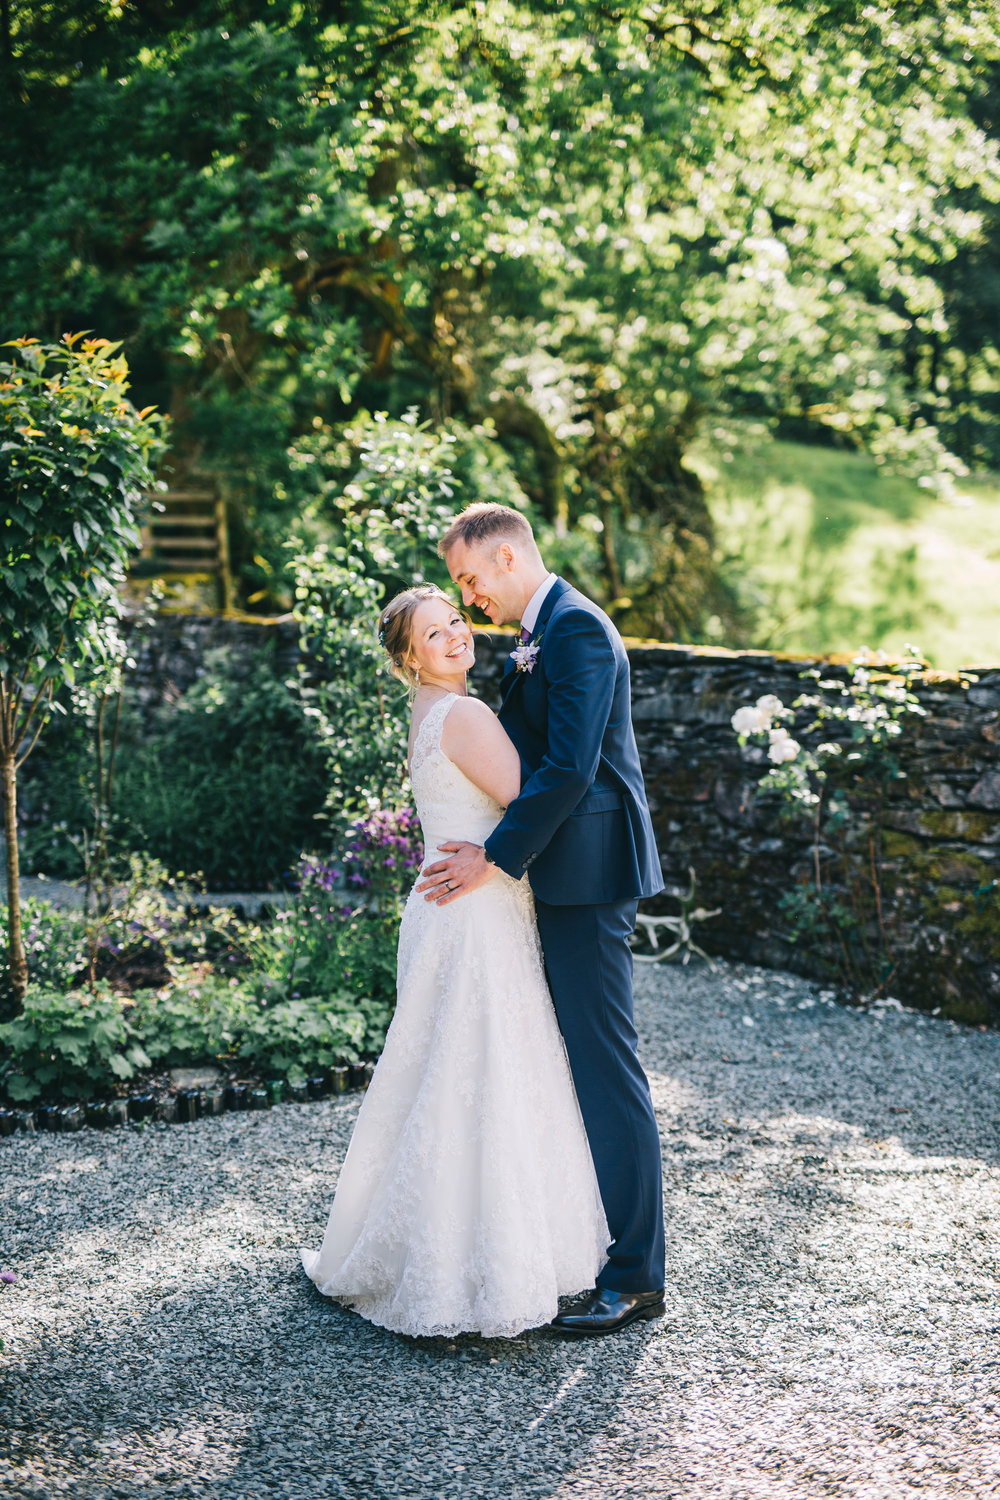 Lake District Wedding Photography - Cote How wedding venue - couple laughing